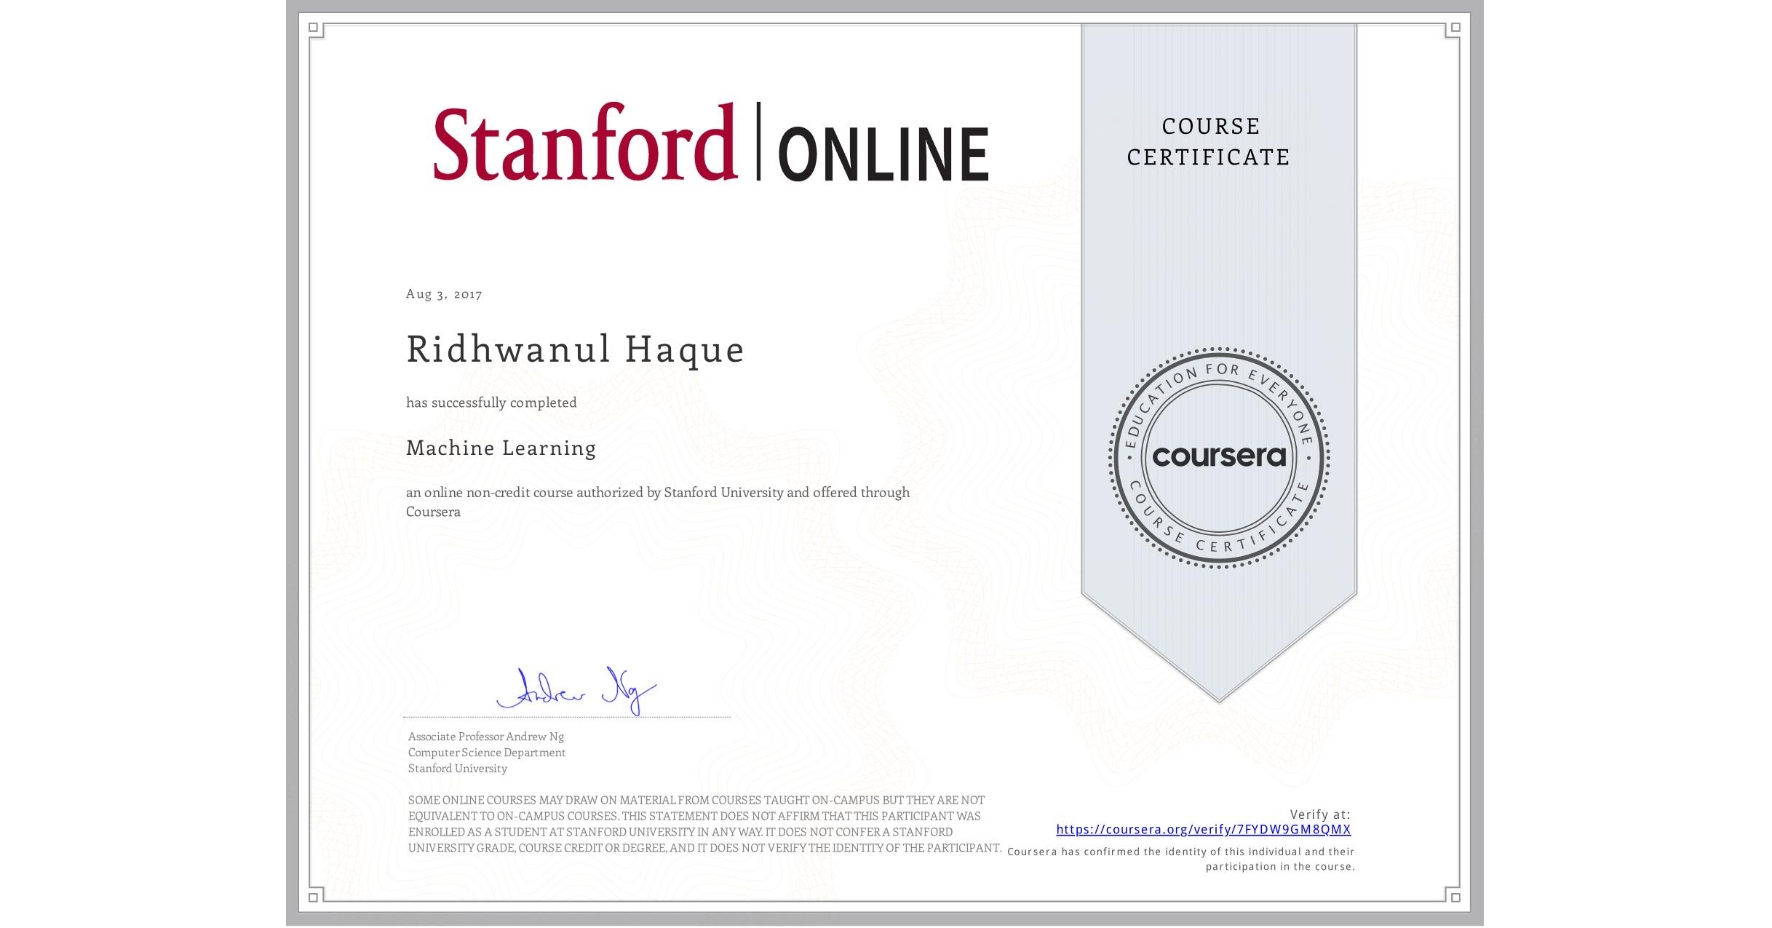 View certificate for Ridhwanul Haque, Machine Learning, an online non-credit course authorized by Stanford University and offered through Coursera